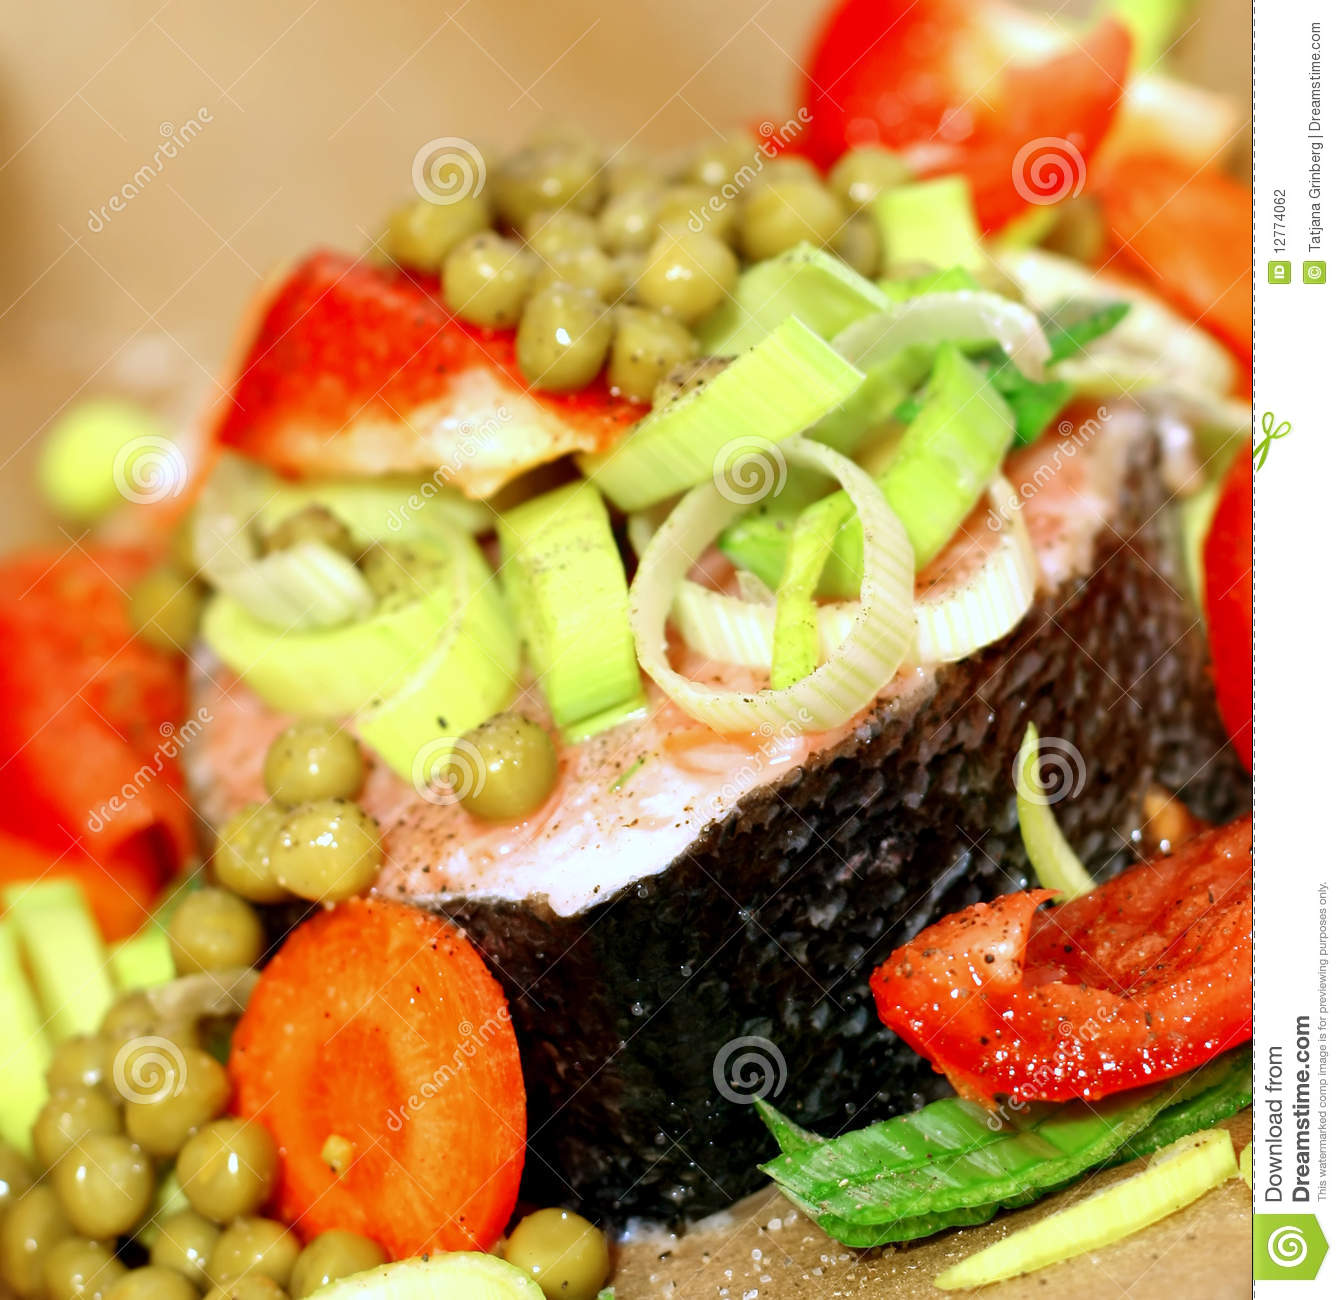 Fish with vegetables stock photography image 12774062 for Fish with vegetables